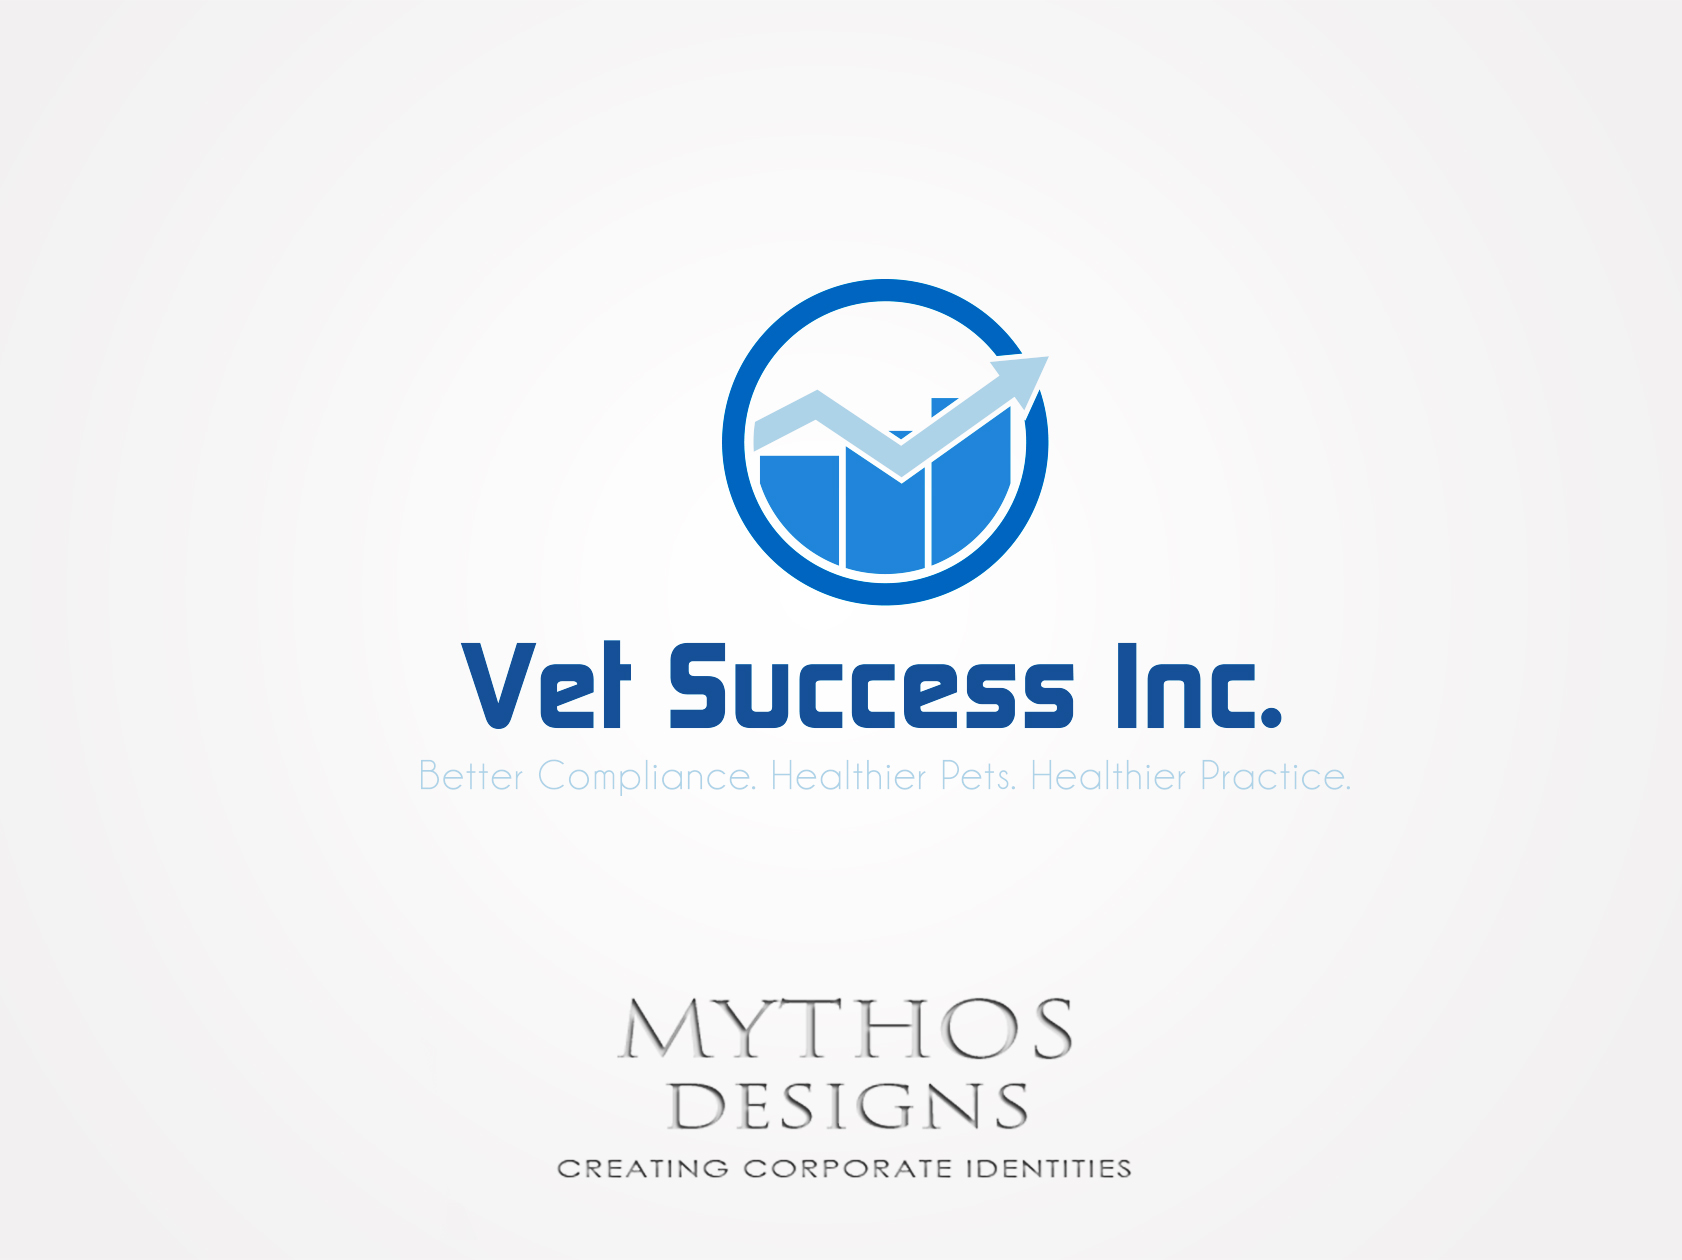 Logo Design by Mythos Designs - Entry No. 61 in the Logo Design Contest Imaginative Logo Design for Vet Success Inc..